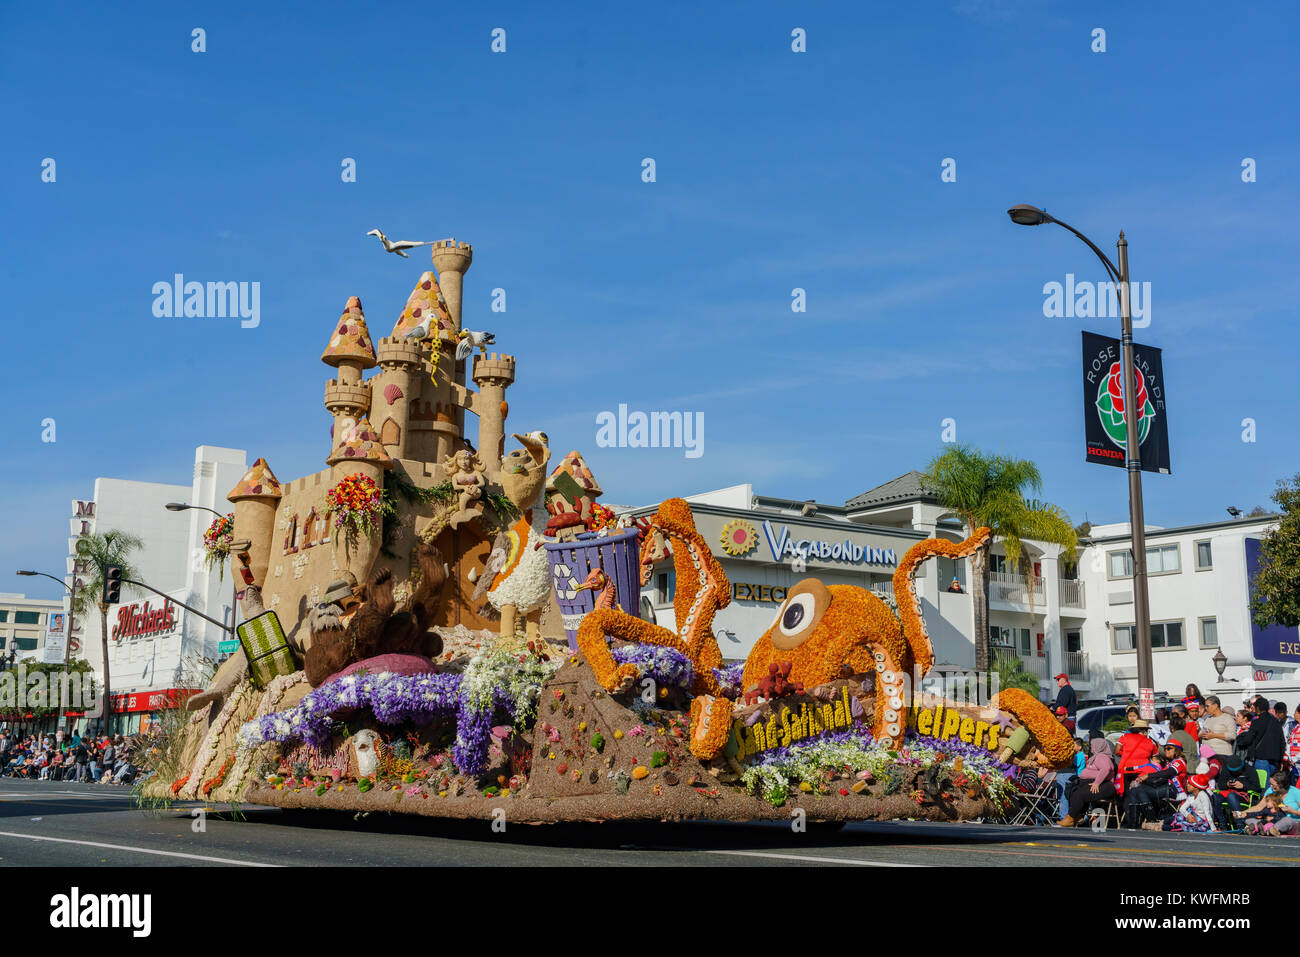 Pasadena,  JAN 1: Octopus and castle, Founder Award float in the famous Rose Parade - America's New Year Celebration - Stock Image